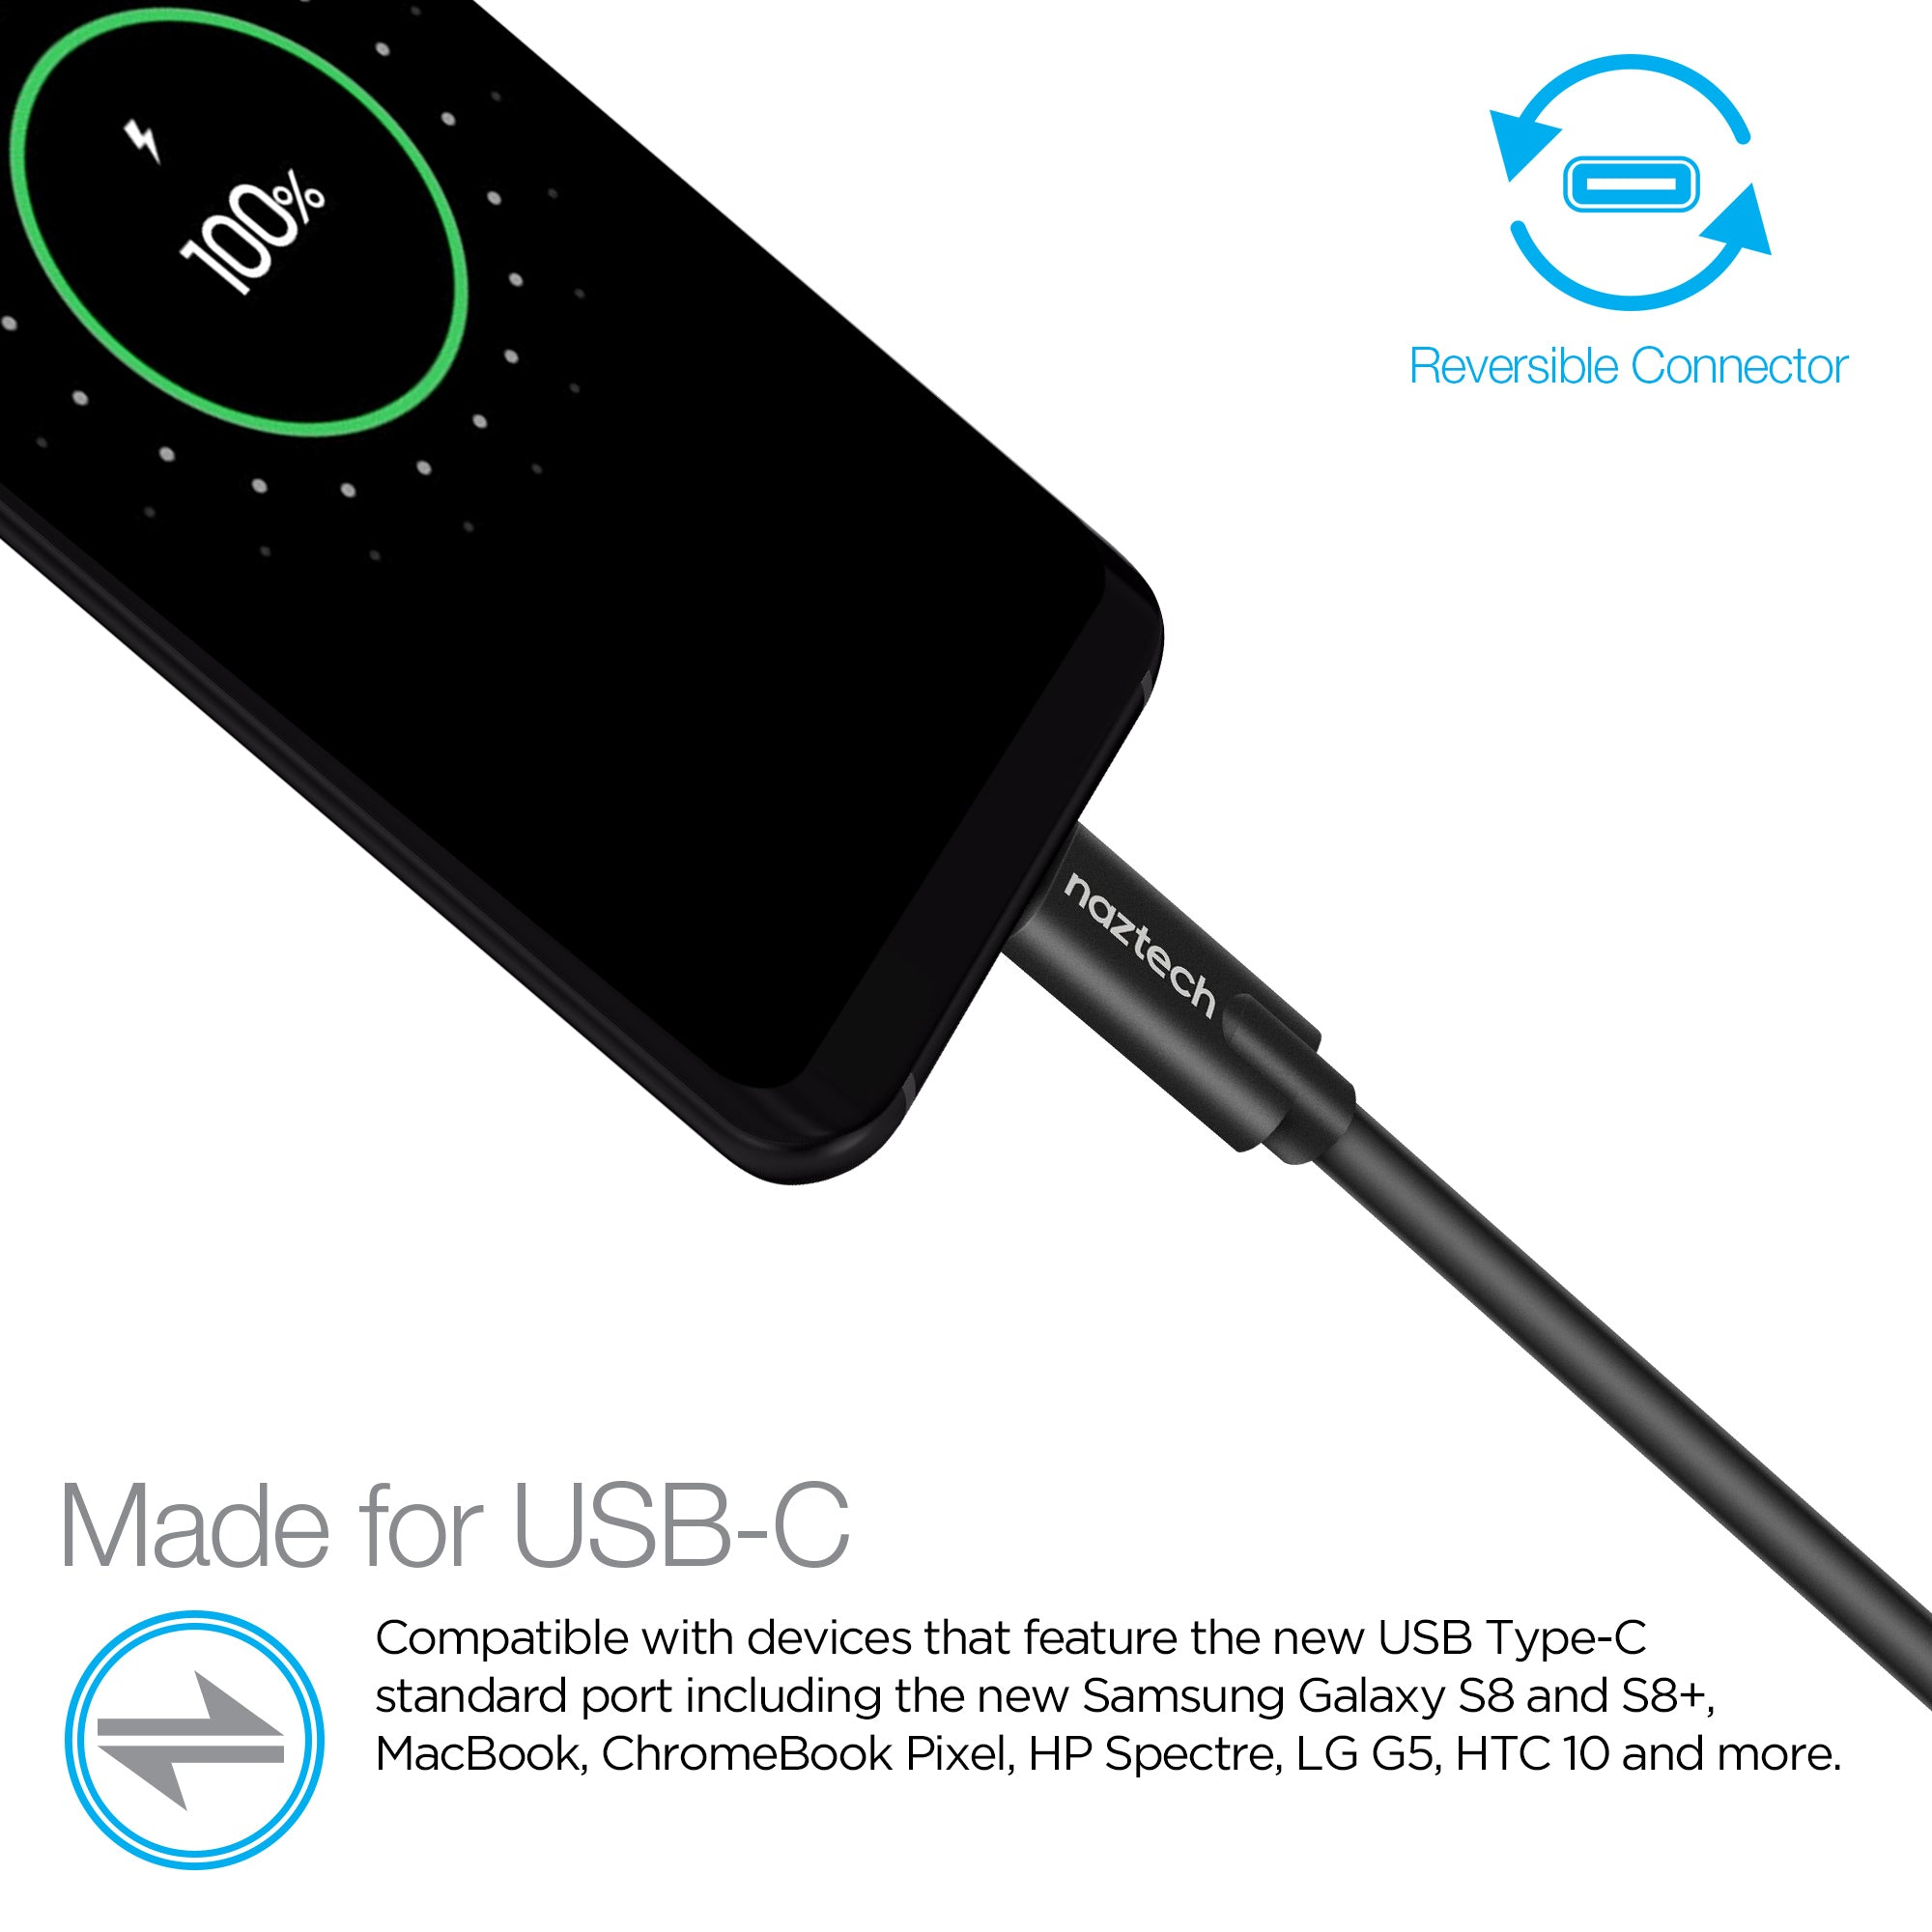 USB-C to USB-C Charge & Sync Cable